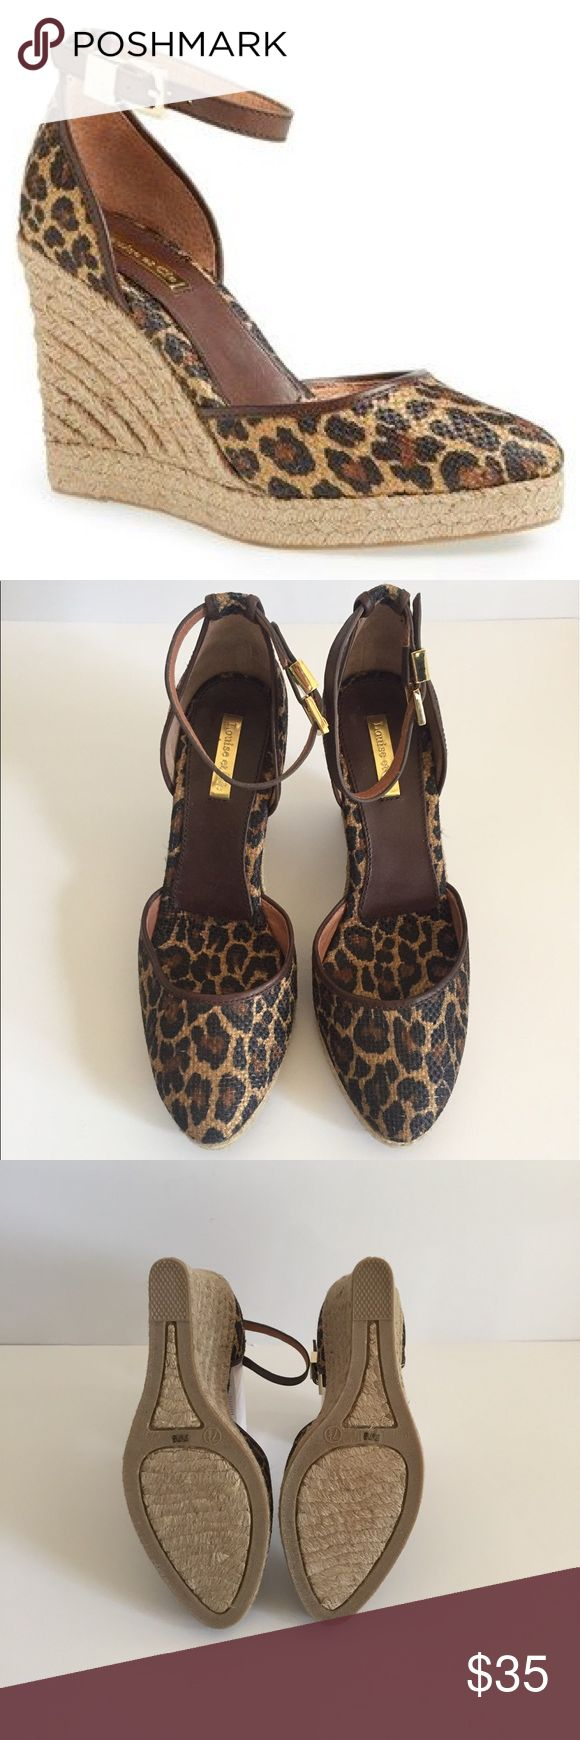 Louise et Cie - Leopard Espadrille Wedge Fun!  Comfortable!  Perfect for summer...wear with any outfit.  NWOT.  Never been worn.  Louise et Cie (Vince Camuto). Vince Camuto Shoes Wedges